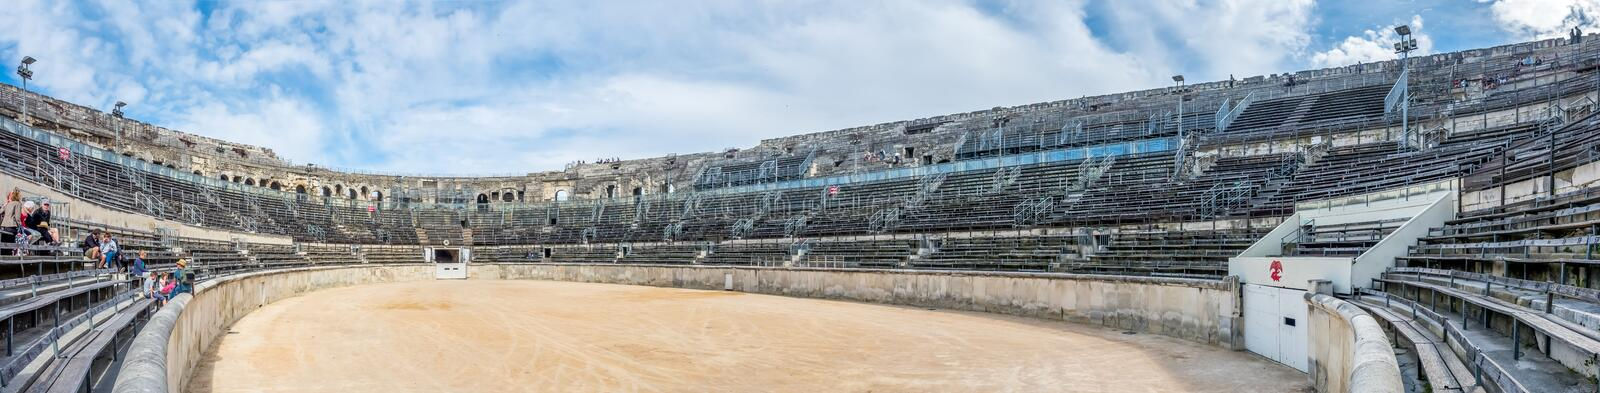 Inside of Arena of Nimes, France stock photography